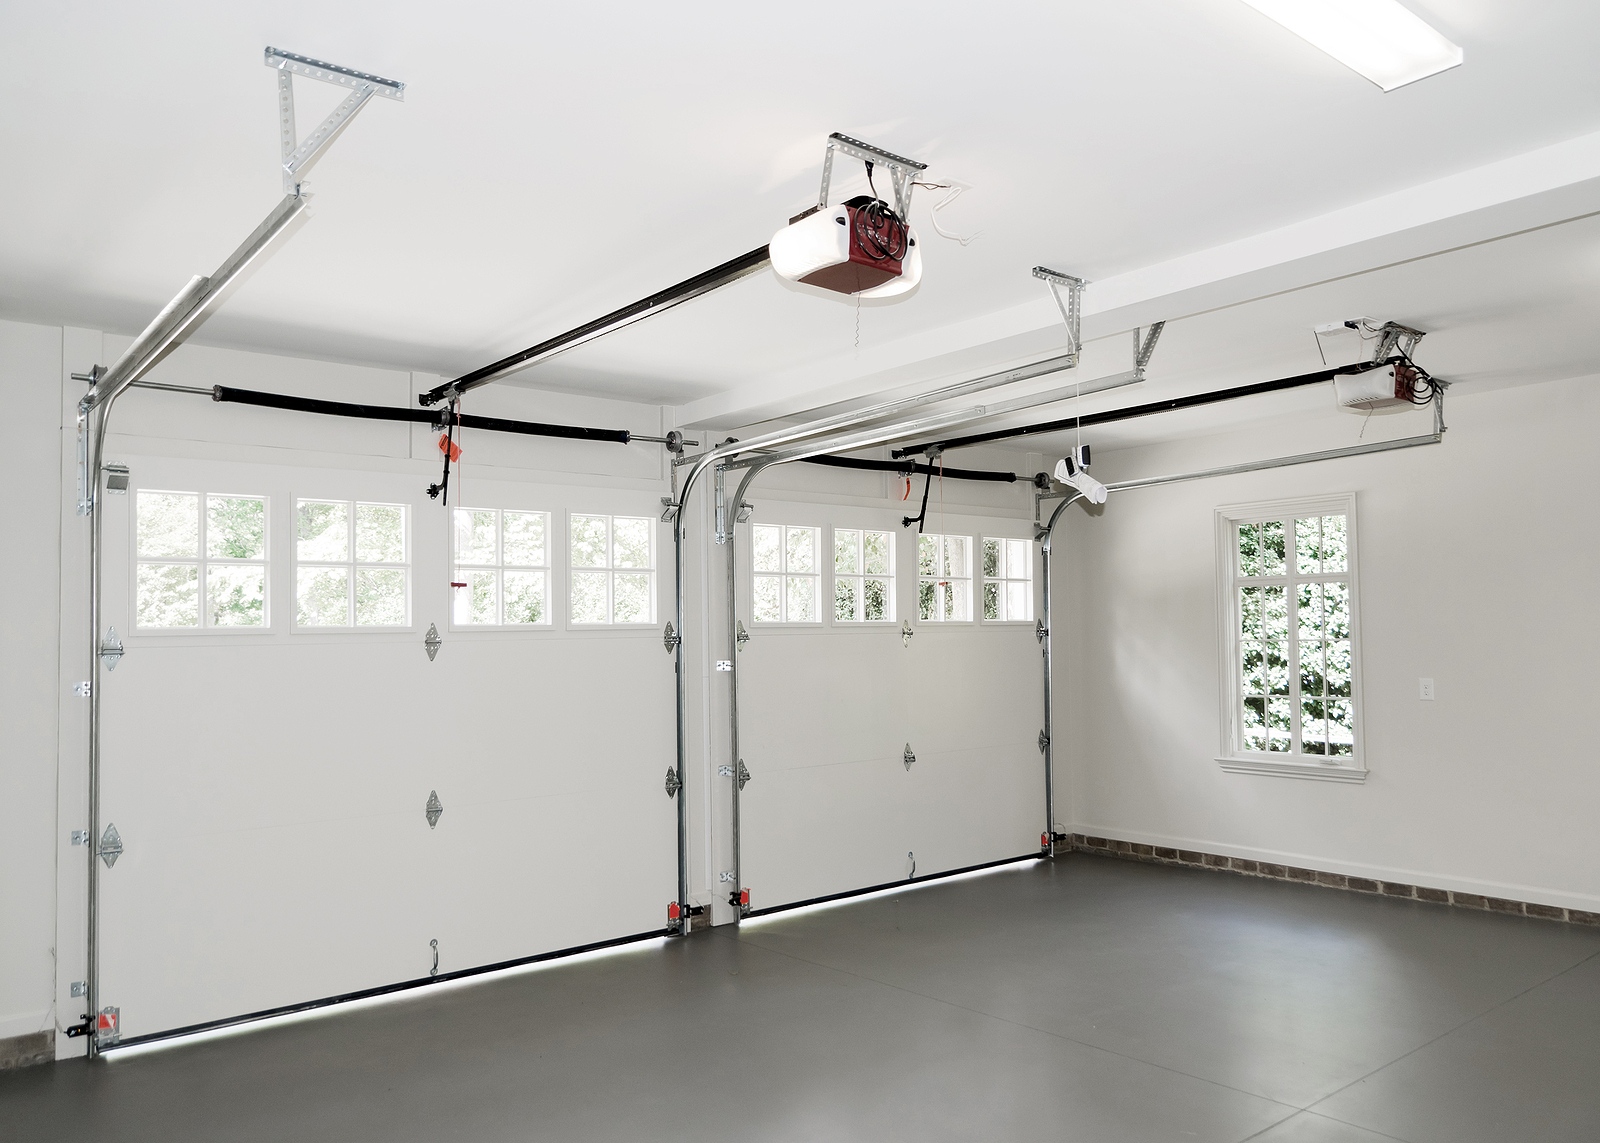 Residential-House-Two-Car-Garage-interior-with-Window